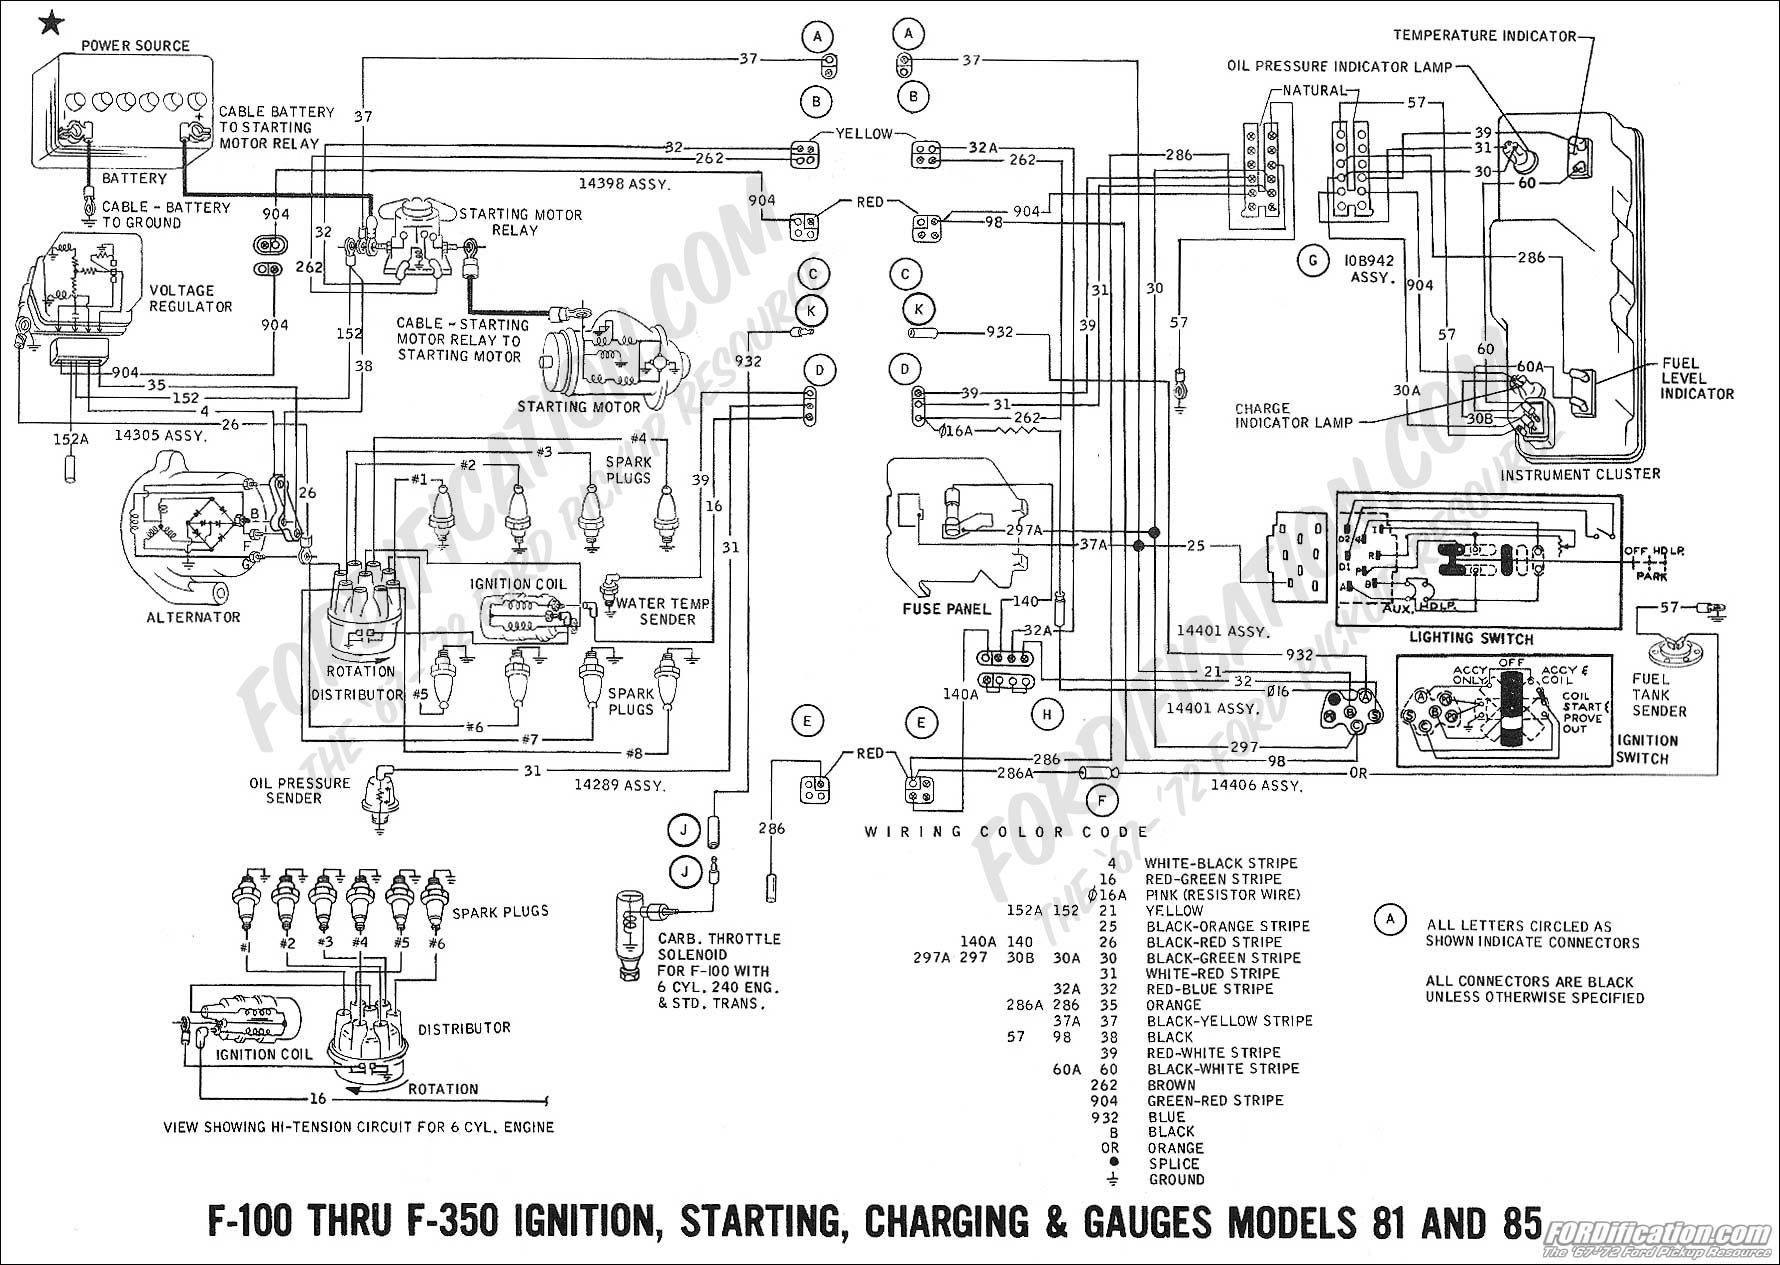 hight resolution of 1968 f100 wiring diagram wiring diagram post ford f100 steering column diagram along with chevy headlight switch